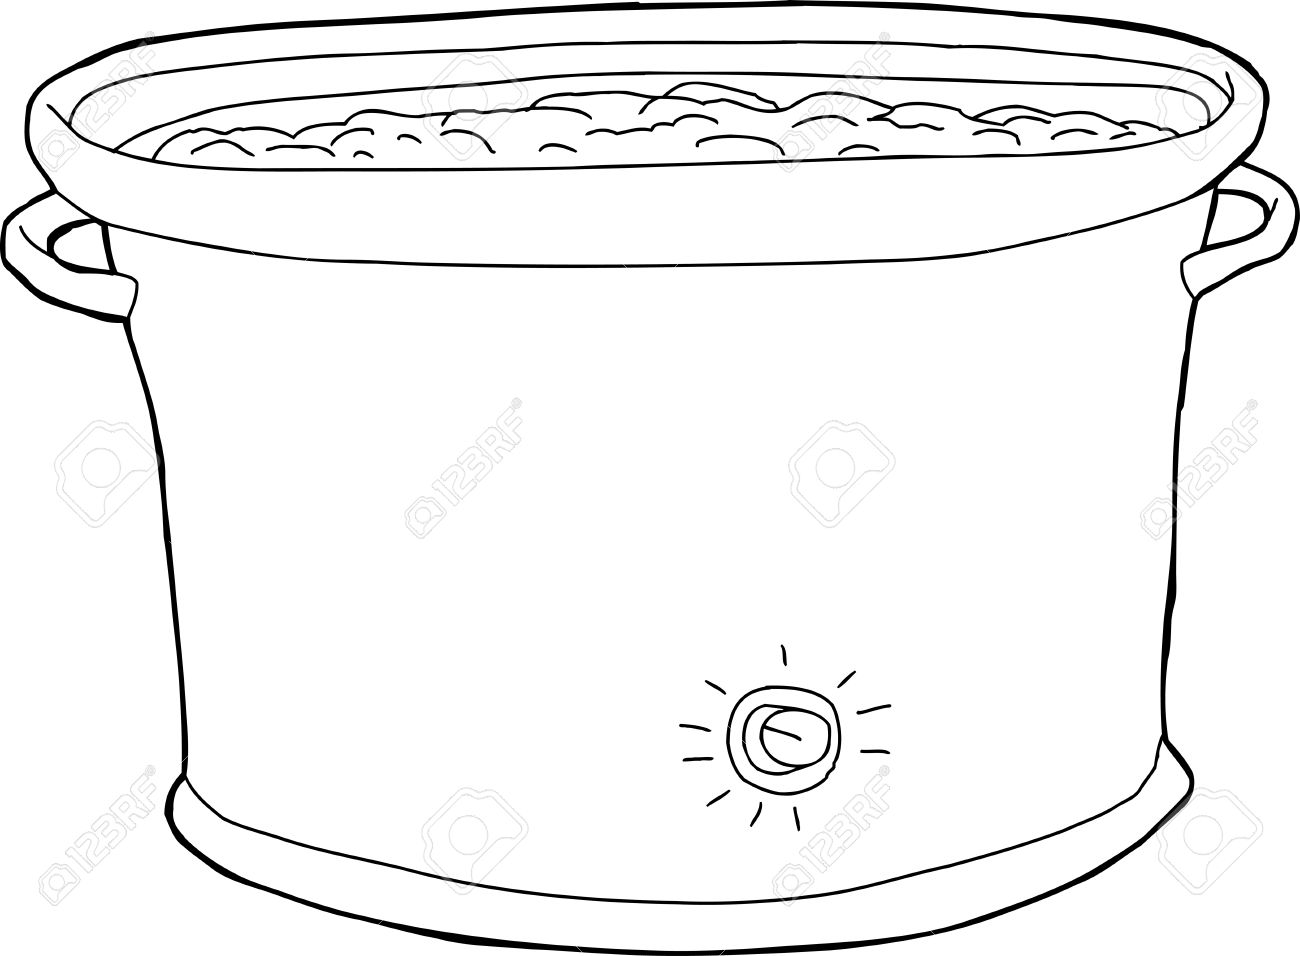 Outline Cartoon Of Crock Pot With Food Inside Royalty Free Cliparts Vectors And Stock Illustration Image 34317331